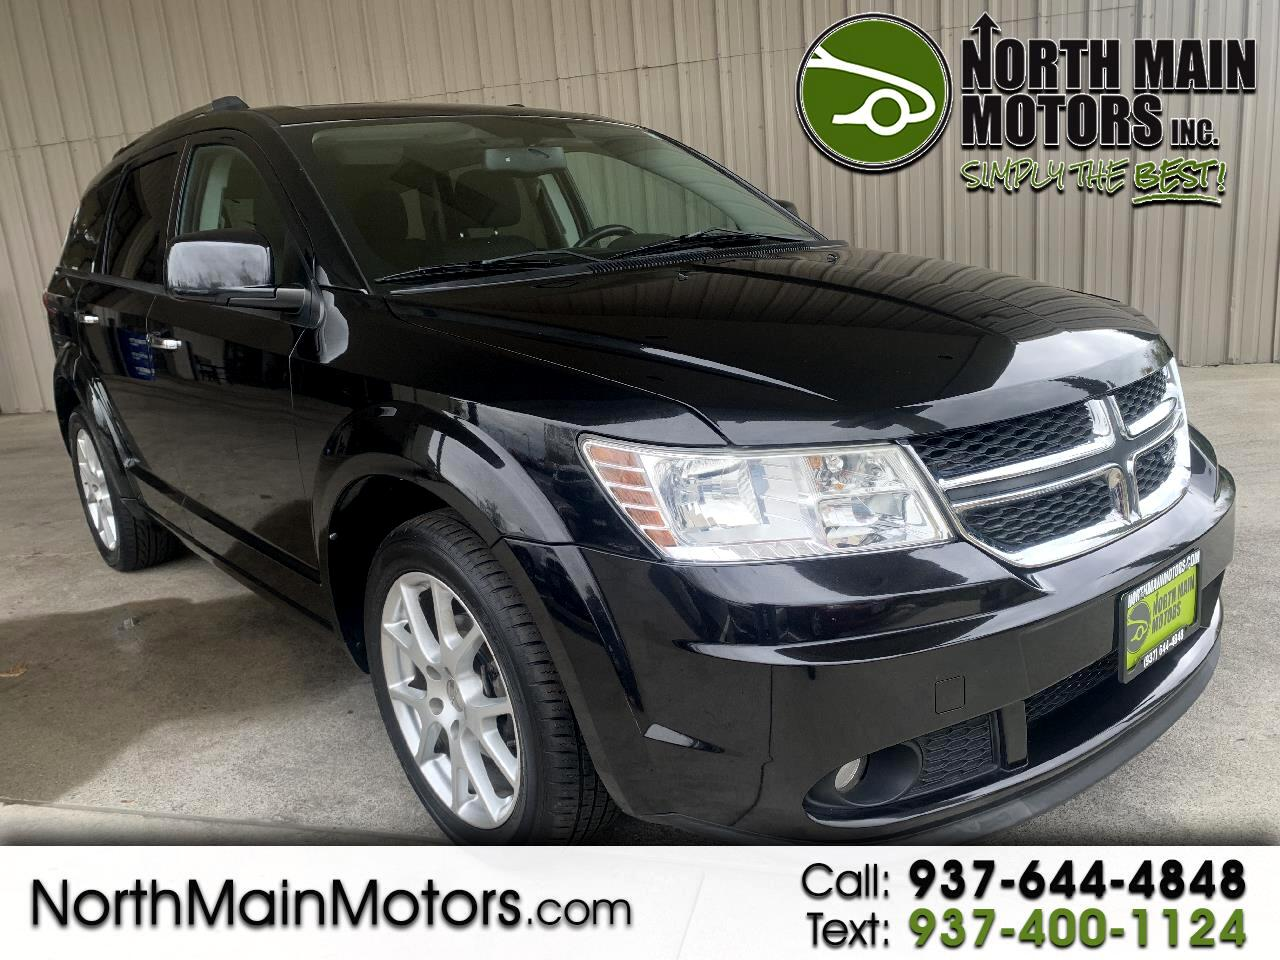 2011 Dodge Journey AWD 4dr Crew